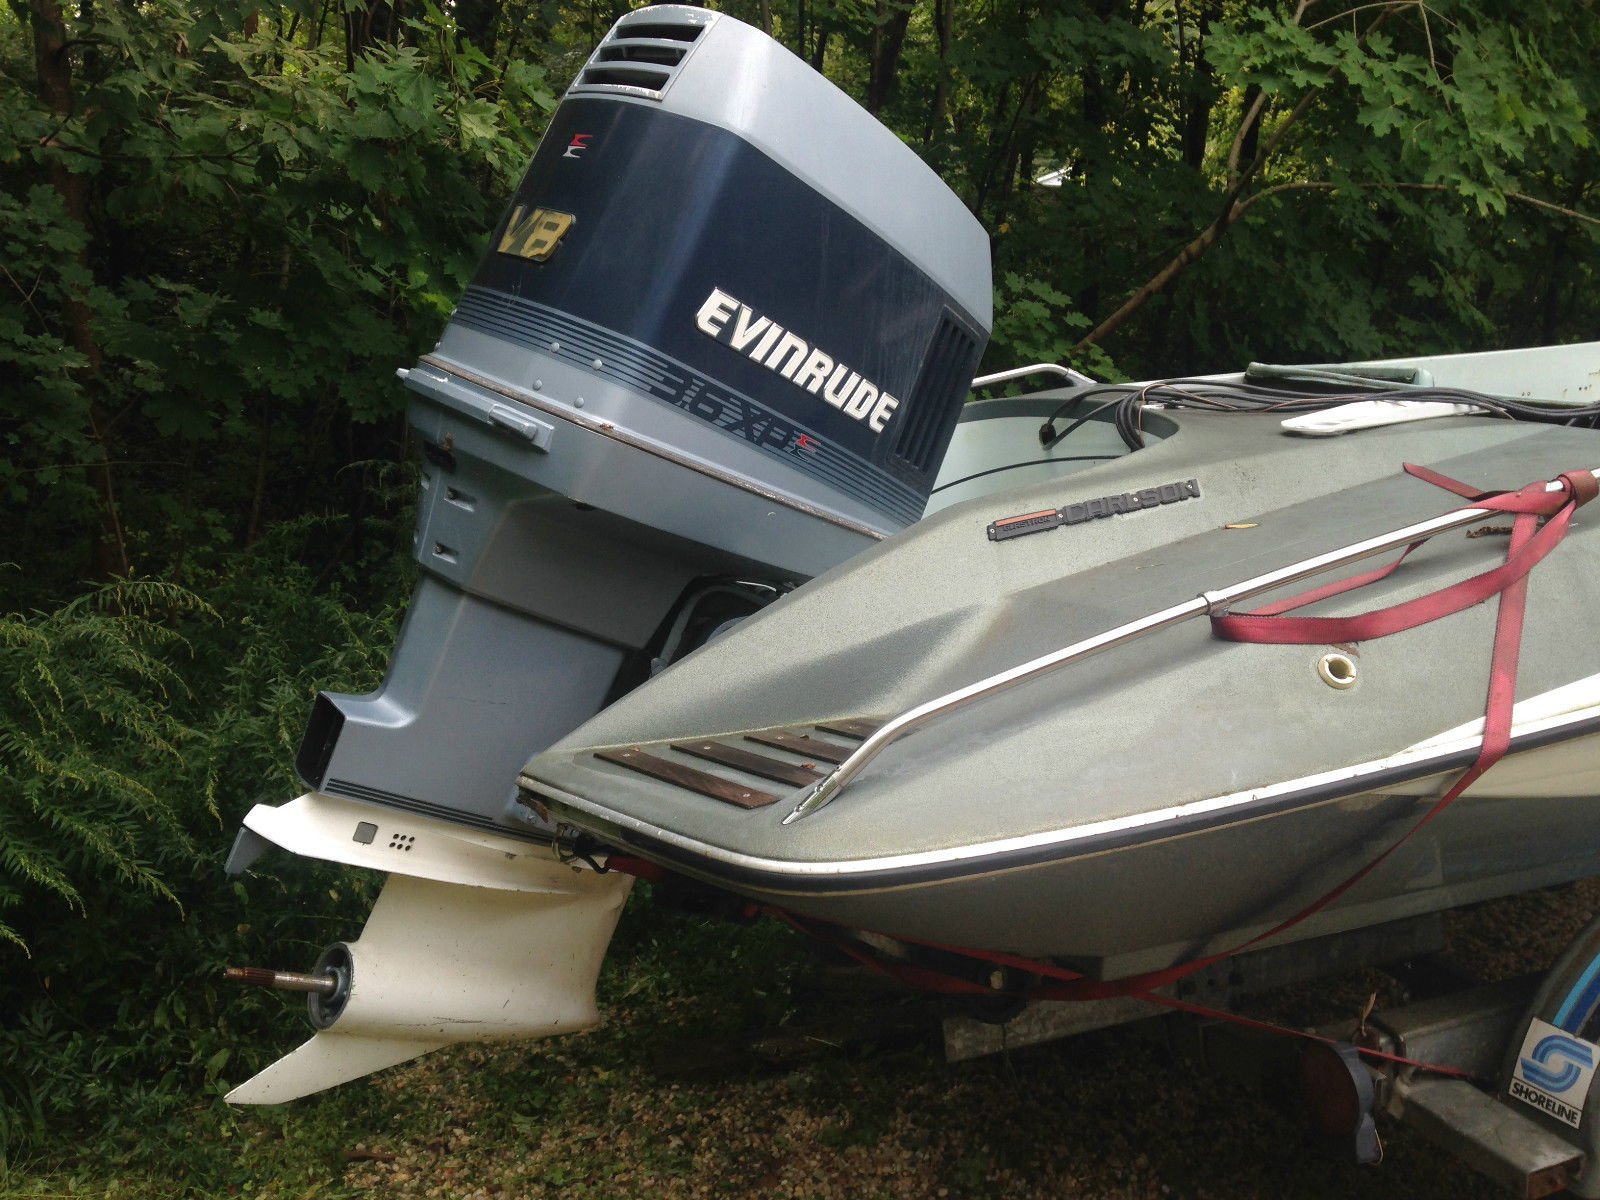 Glastron Cvx 20 For Sale >> Glastron Cvx-20 boat for sale from USA